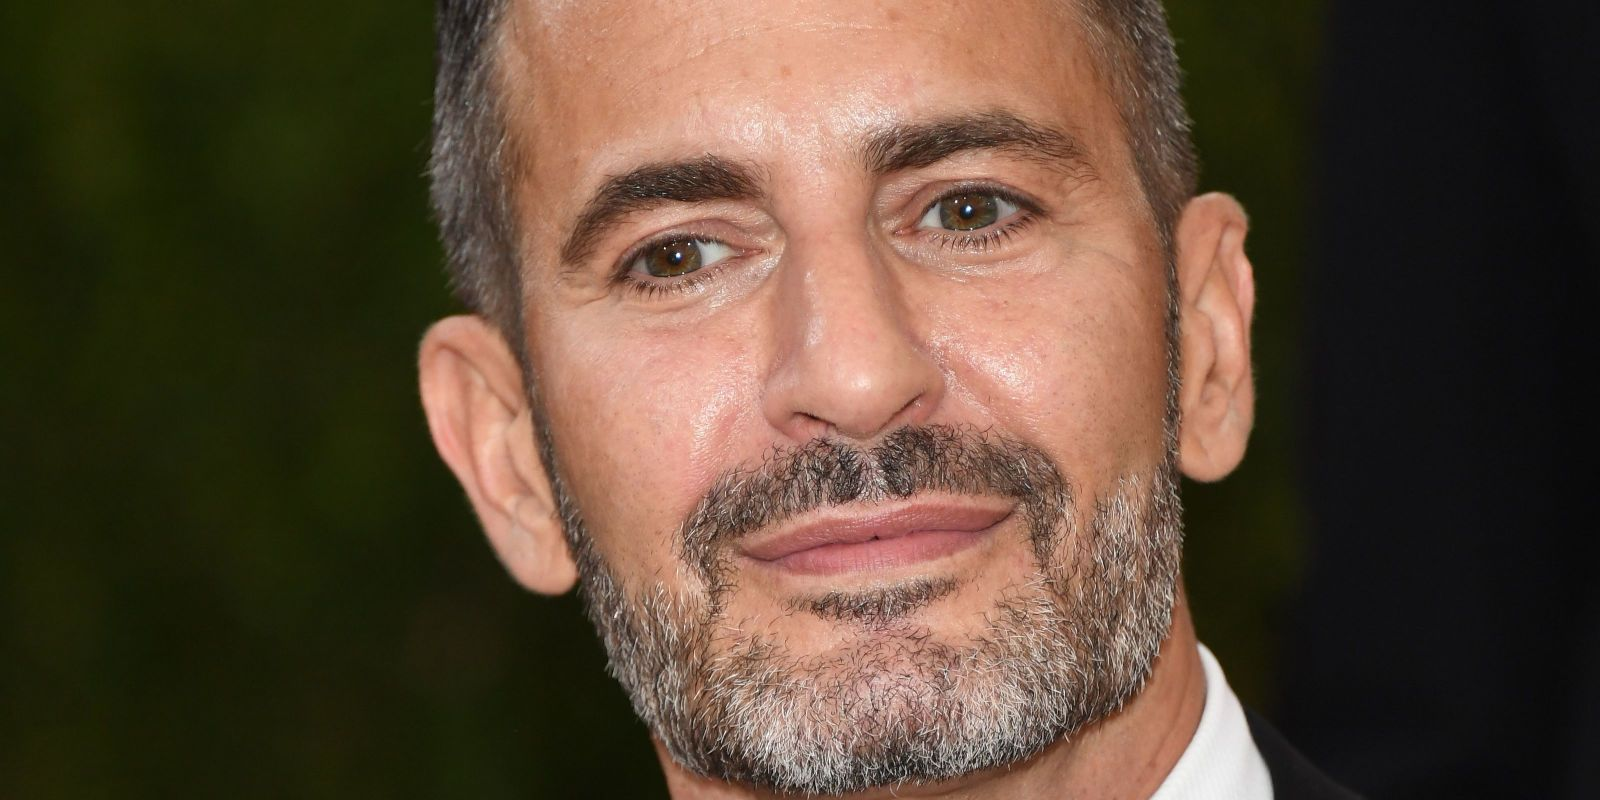 Marc Jacobs Take Home Top Honors at the 2016 CFDA Awards http://ift.tt/1ObgIcl #ELLE #Fashion